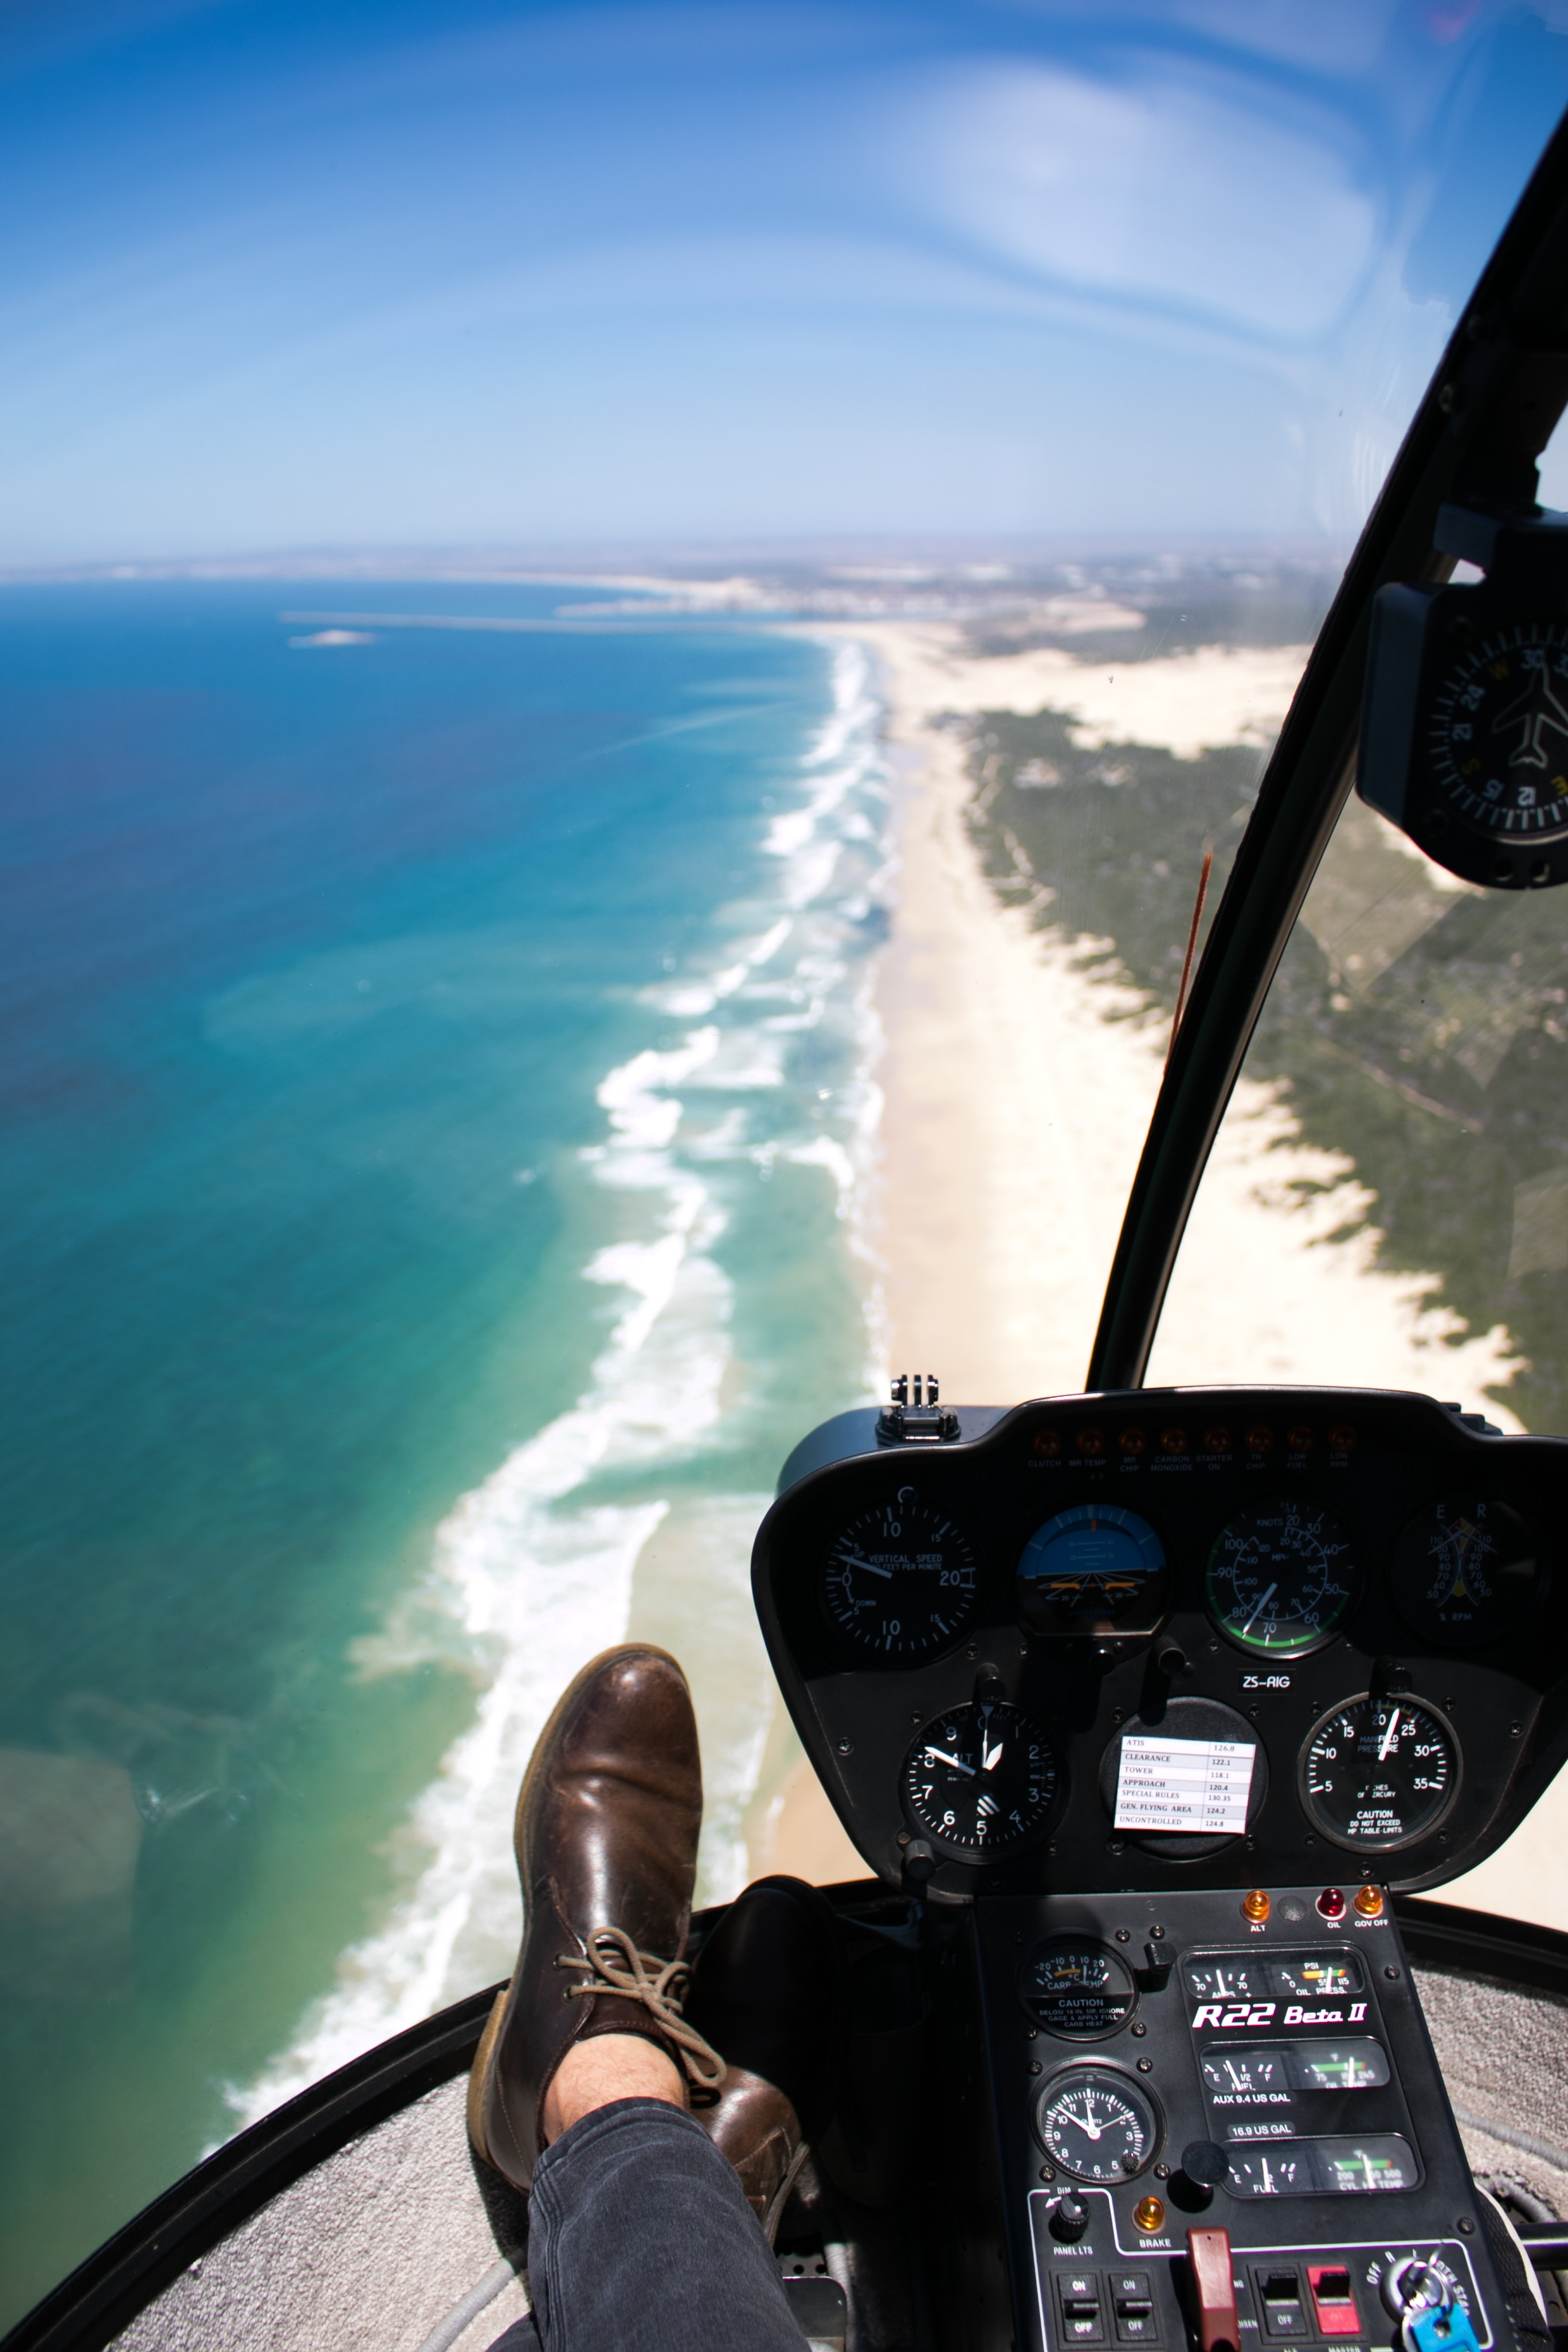 person inside aircraft over beach